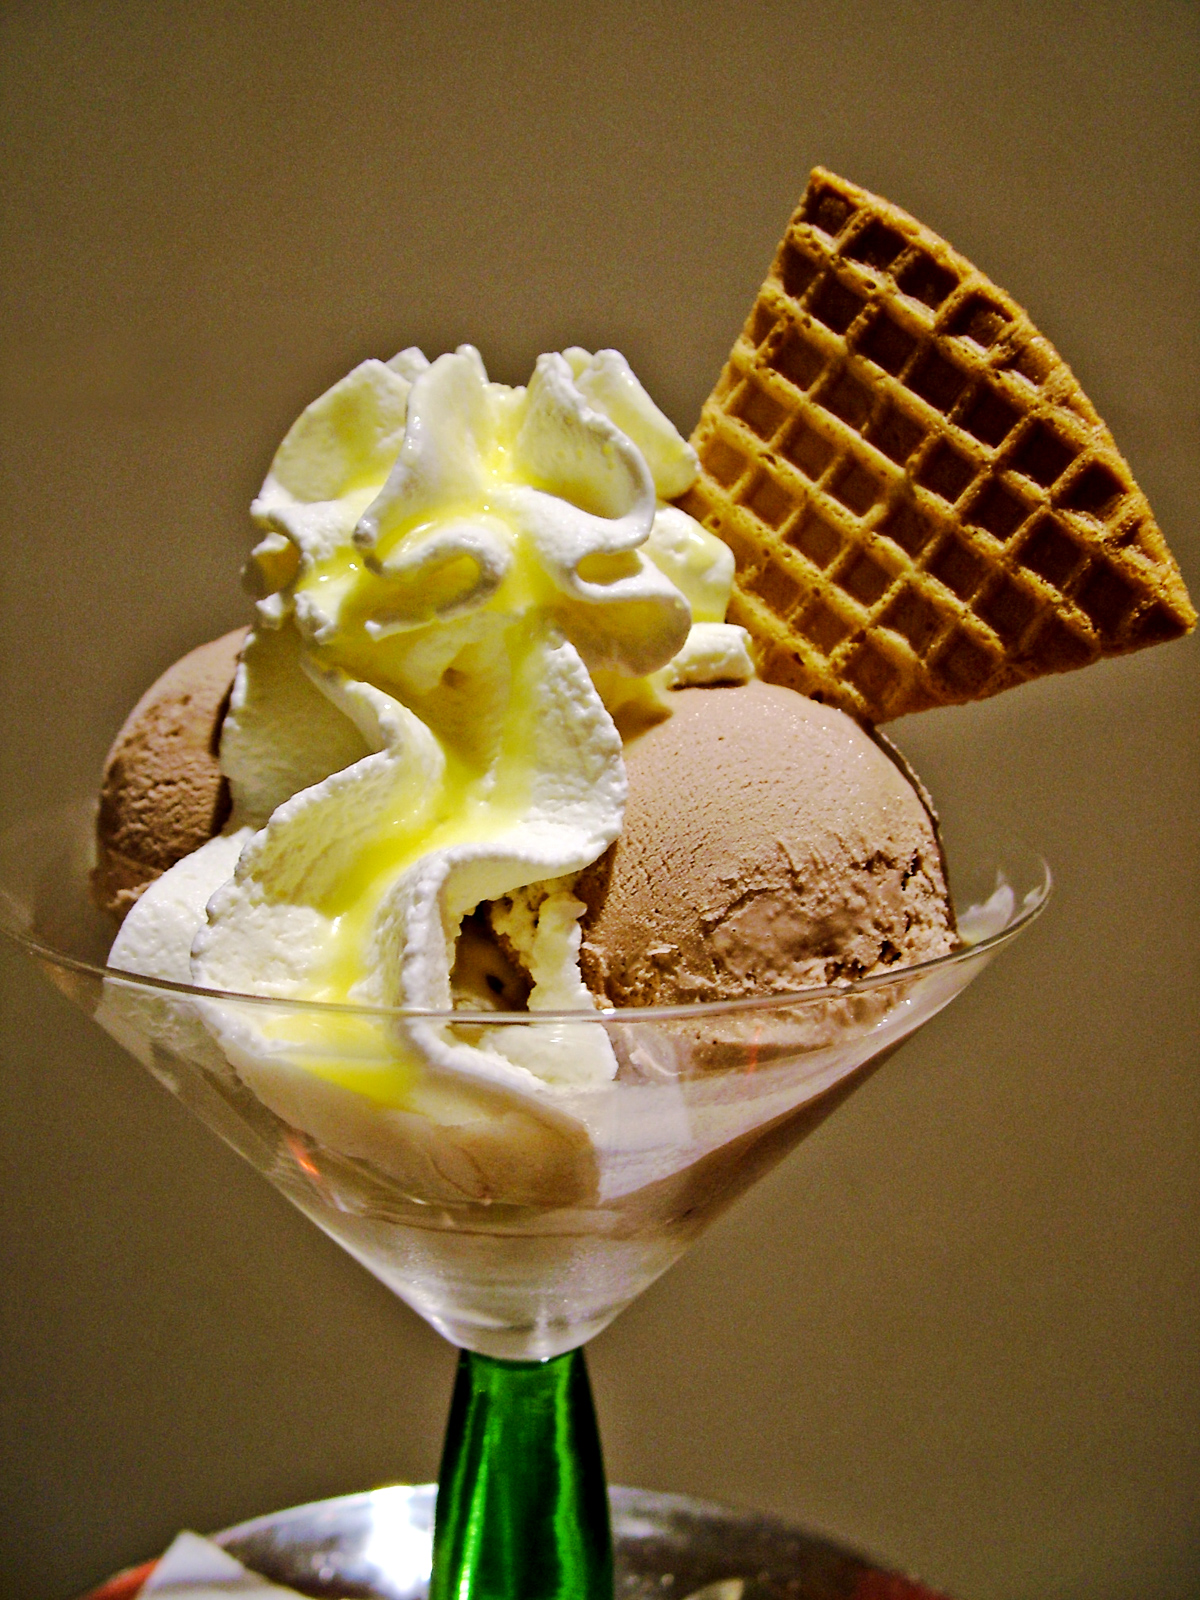 Description Ice Cream dessert 02.jpg